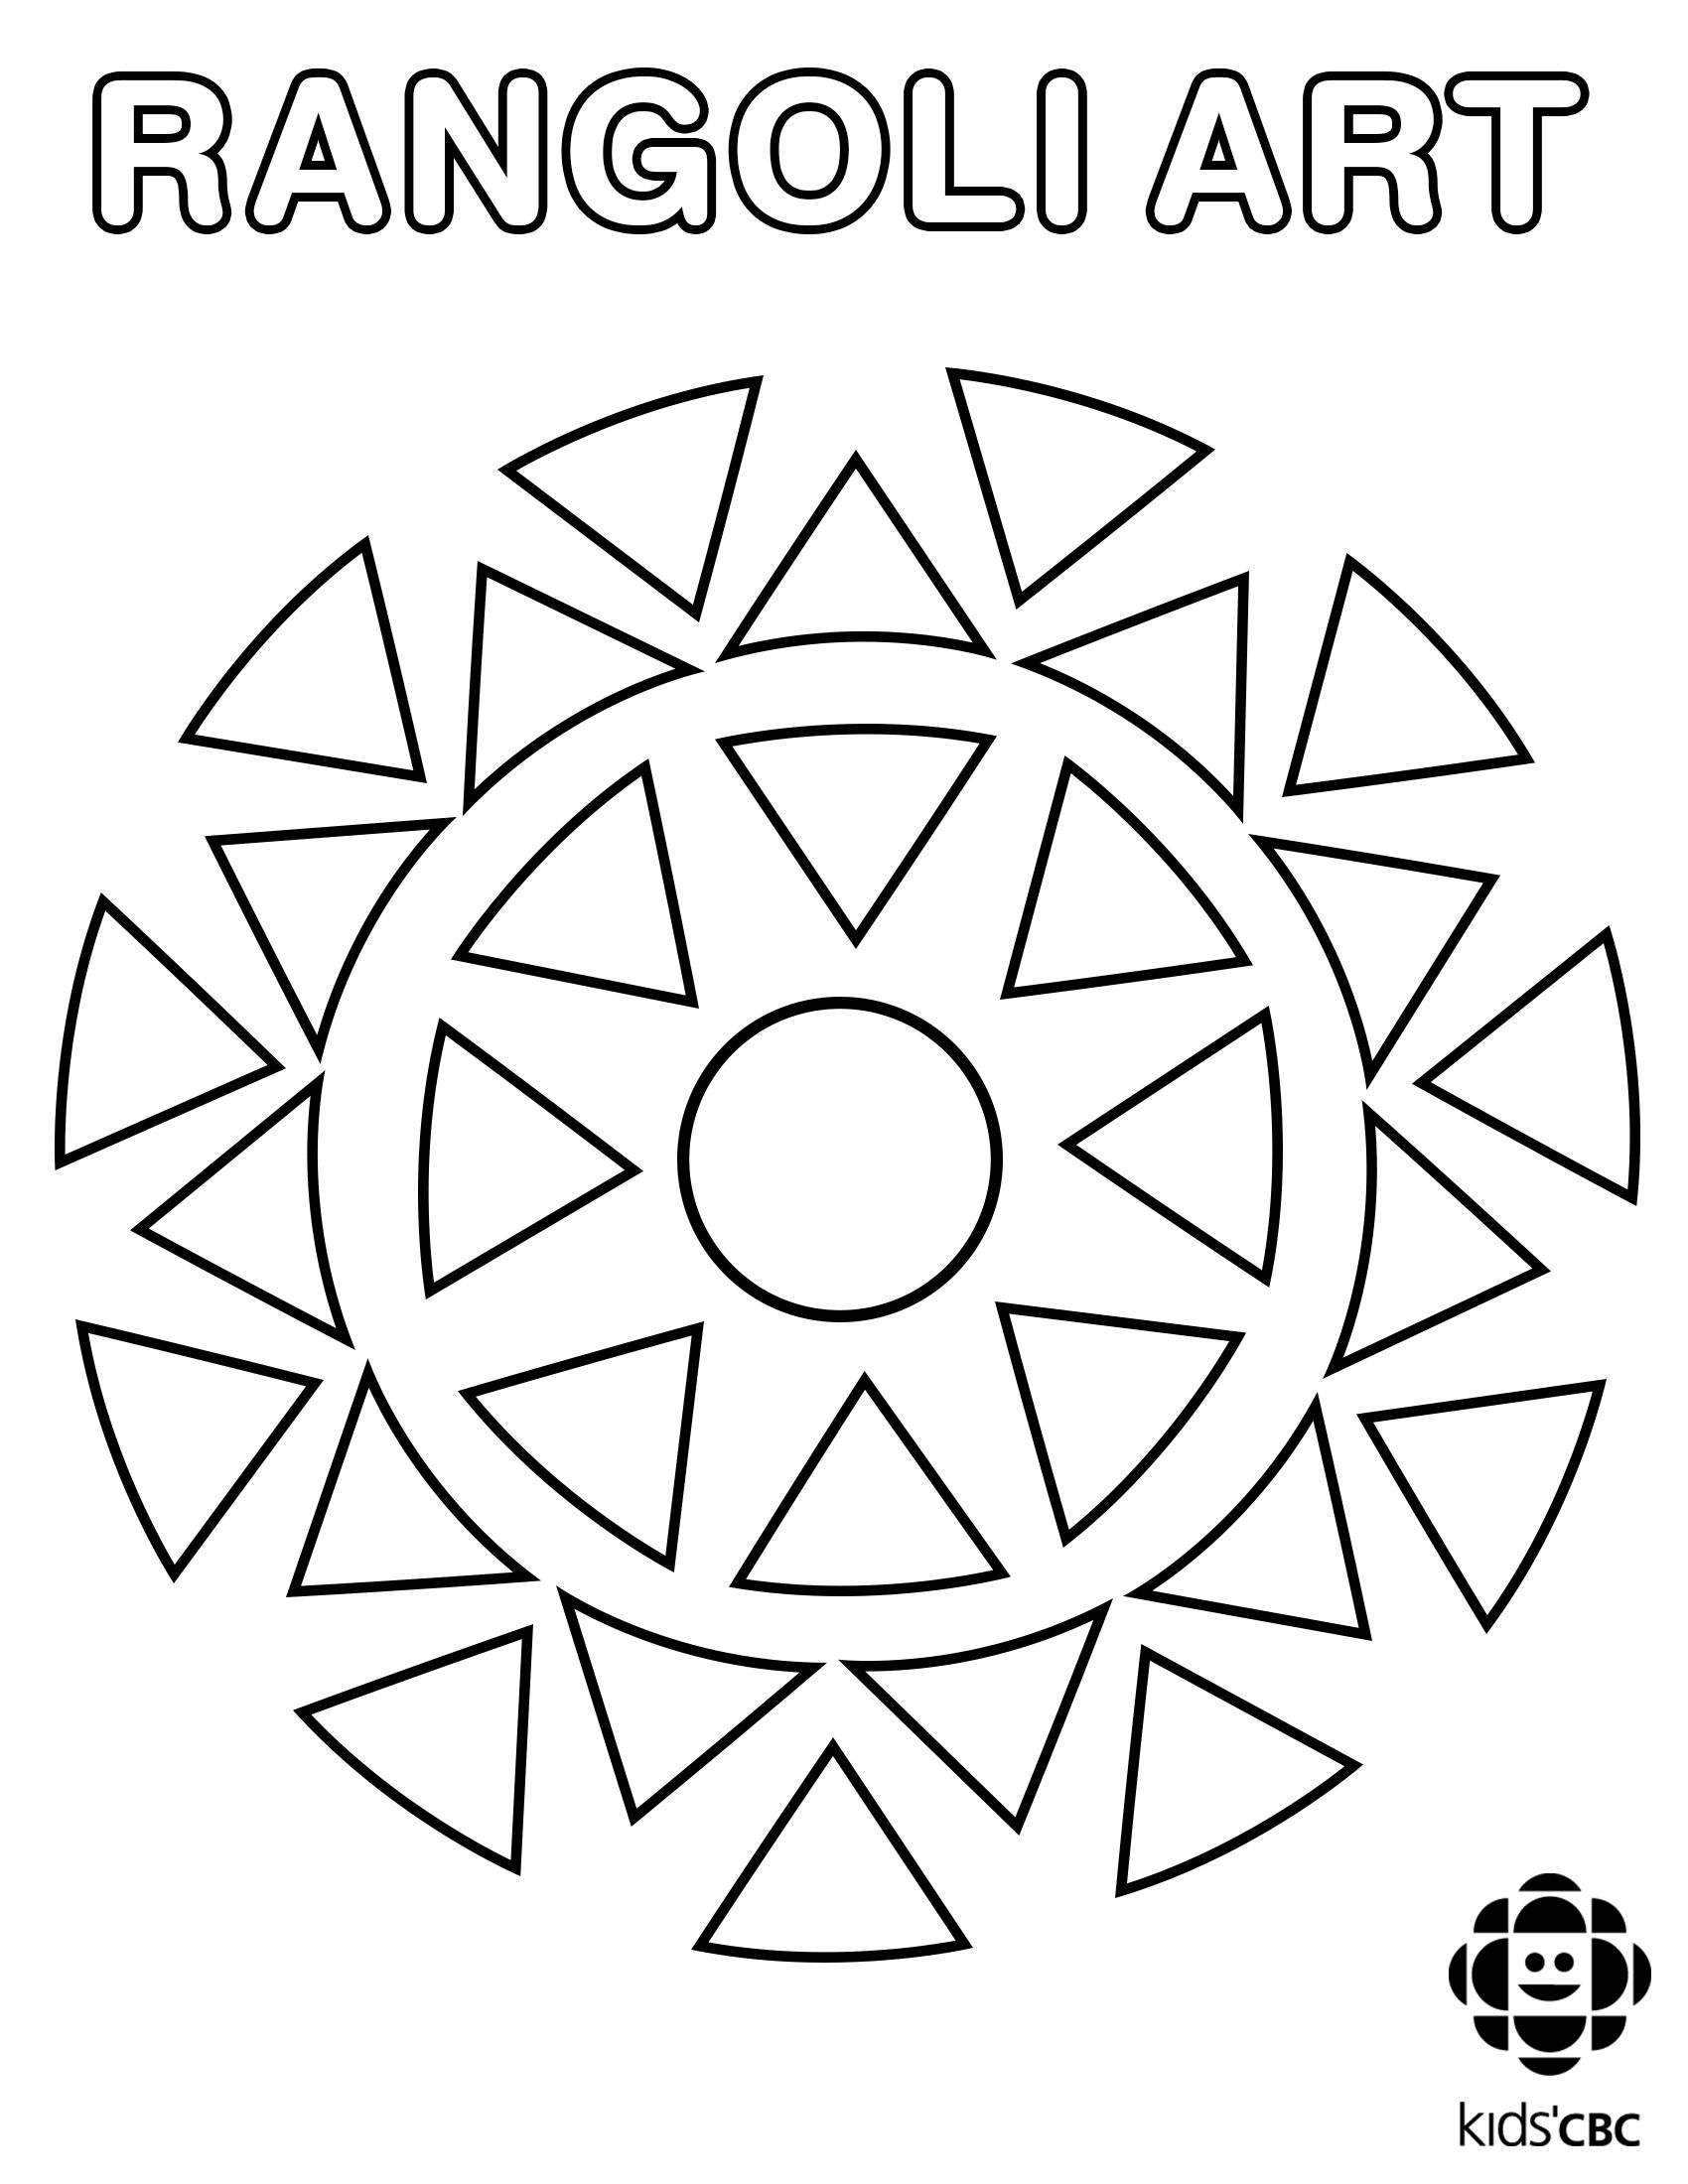 Basic Shapes Coloring Pages For Preschool